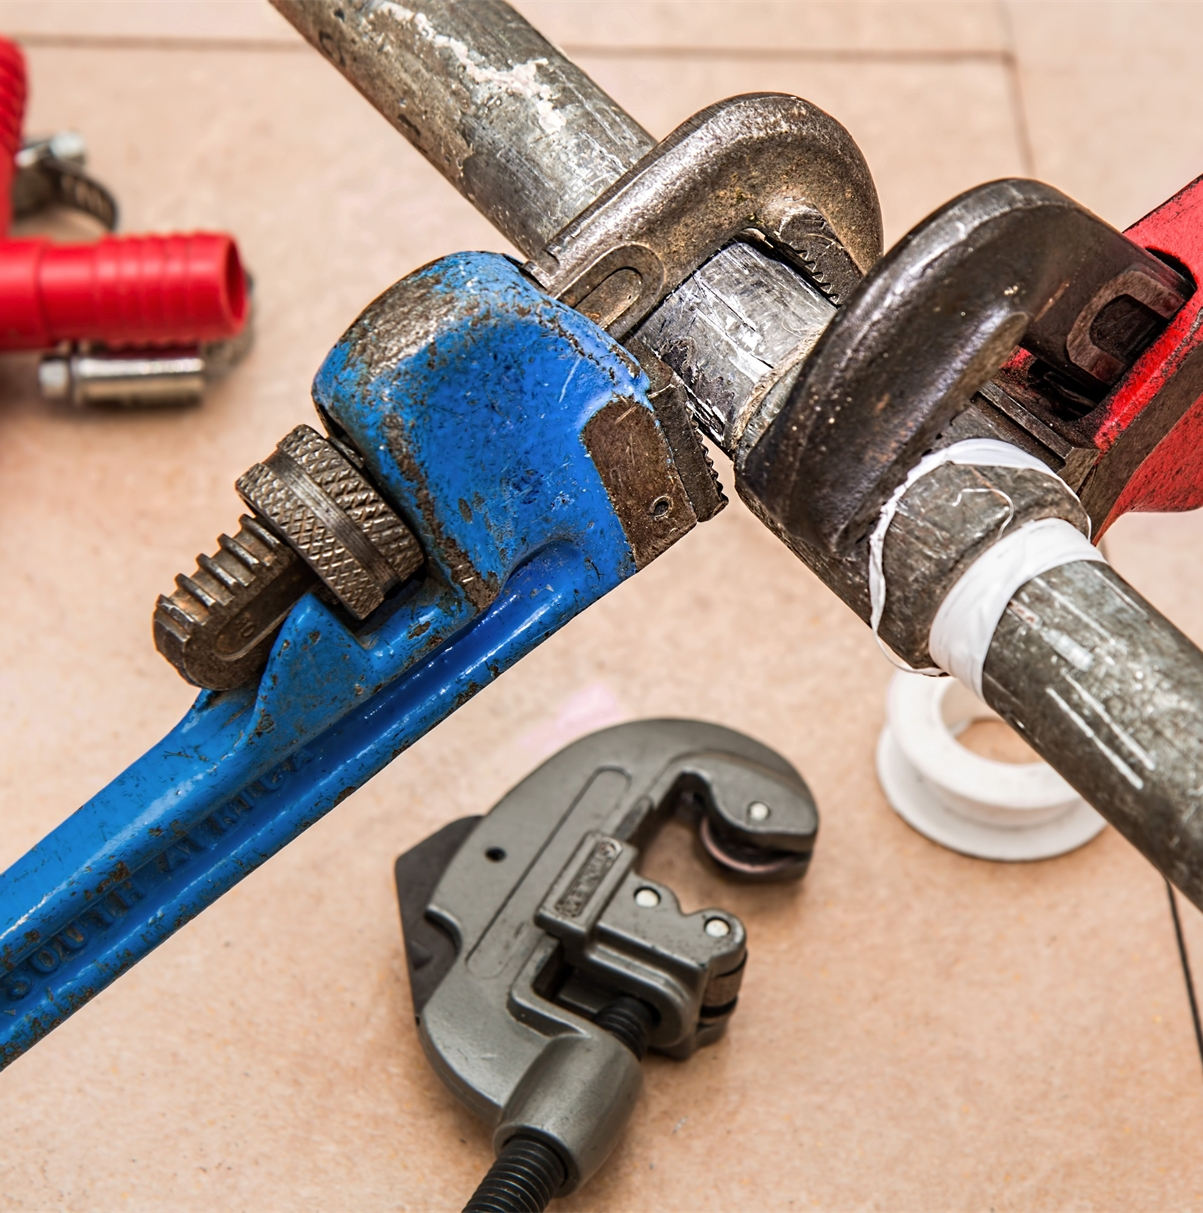 Top 10 House Problems - Plumbing. Slow drips, slow drains, running toilets can wreak havoc on a home